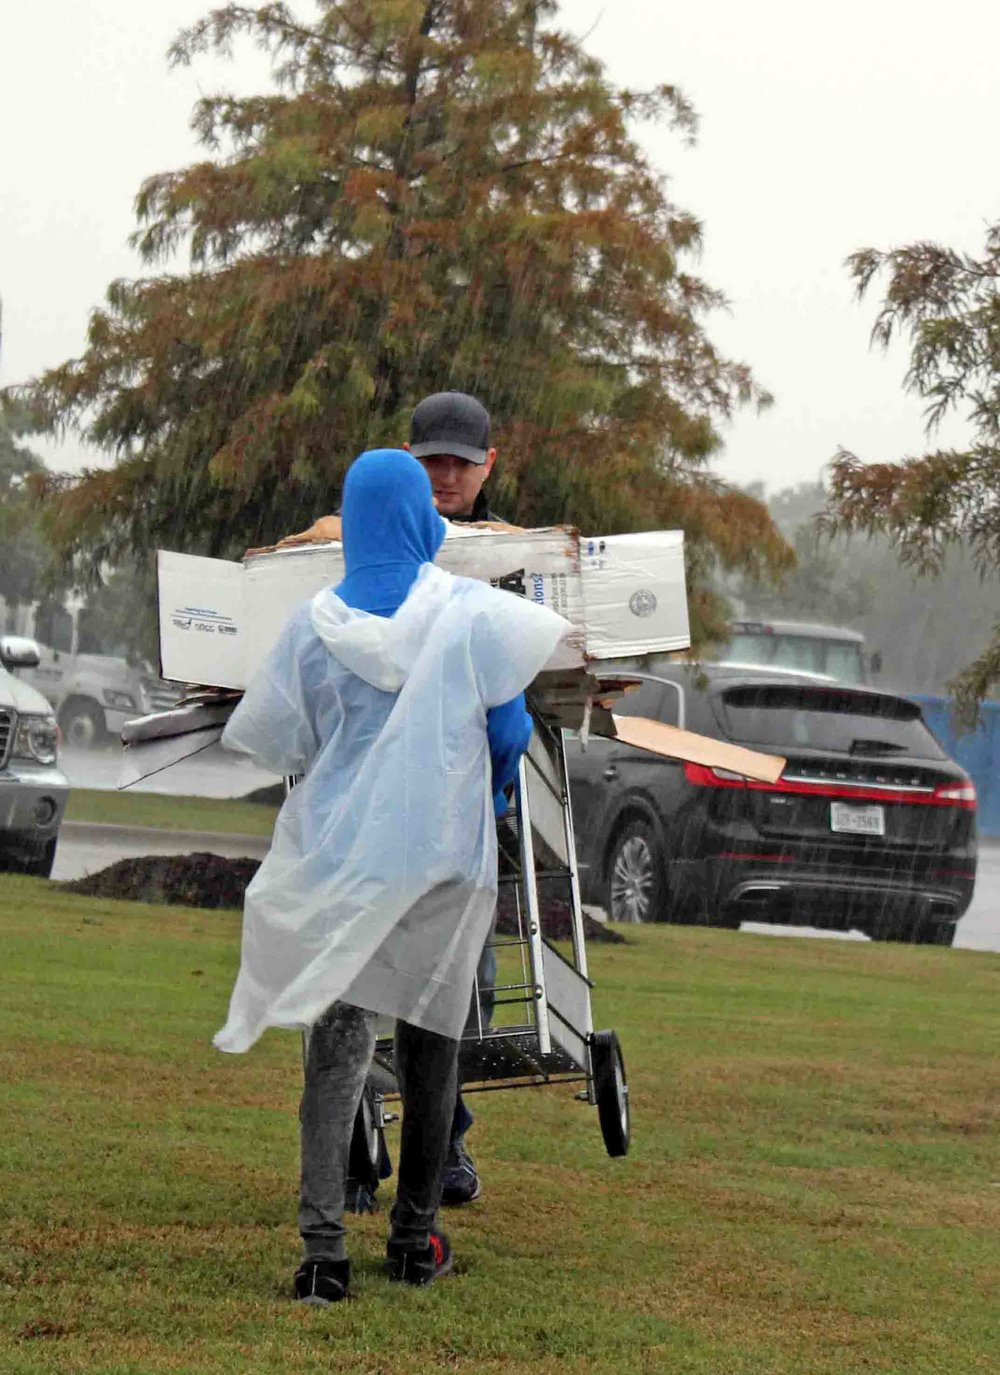 Bryce Gullatt, City of Murphy staff and Green Team member, works against wind and rain with a student volunteer from the Murphy Middle School Environmental Club to move an unwieldy cart of cardboard to be recycled.